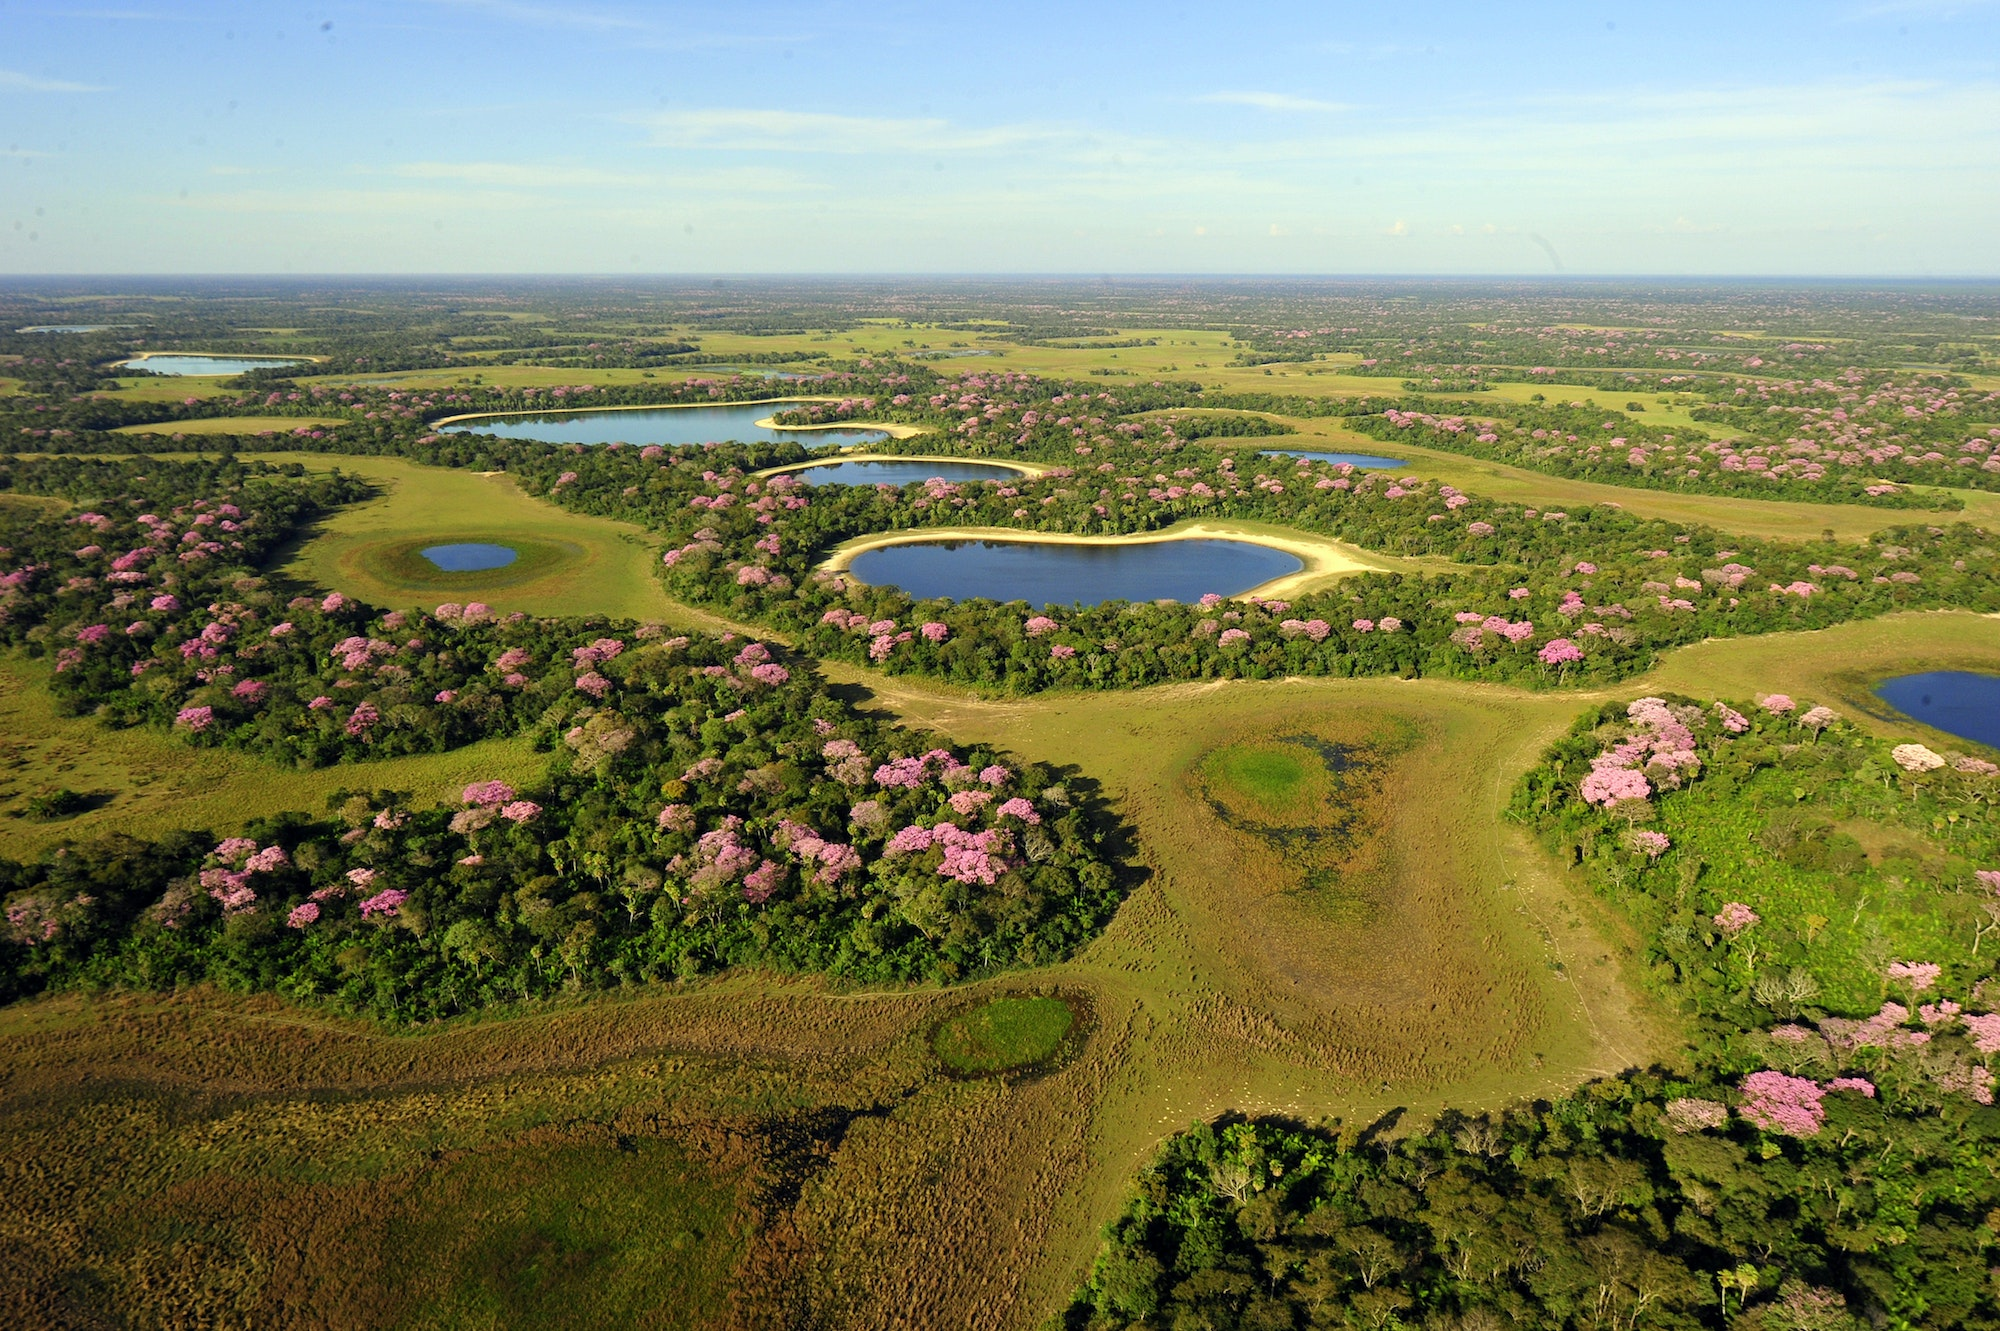 The Pantanal is home to 10 million caiman, 650 bird species, 400 kinds of fish, and more than 100 mammal species.